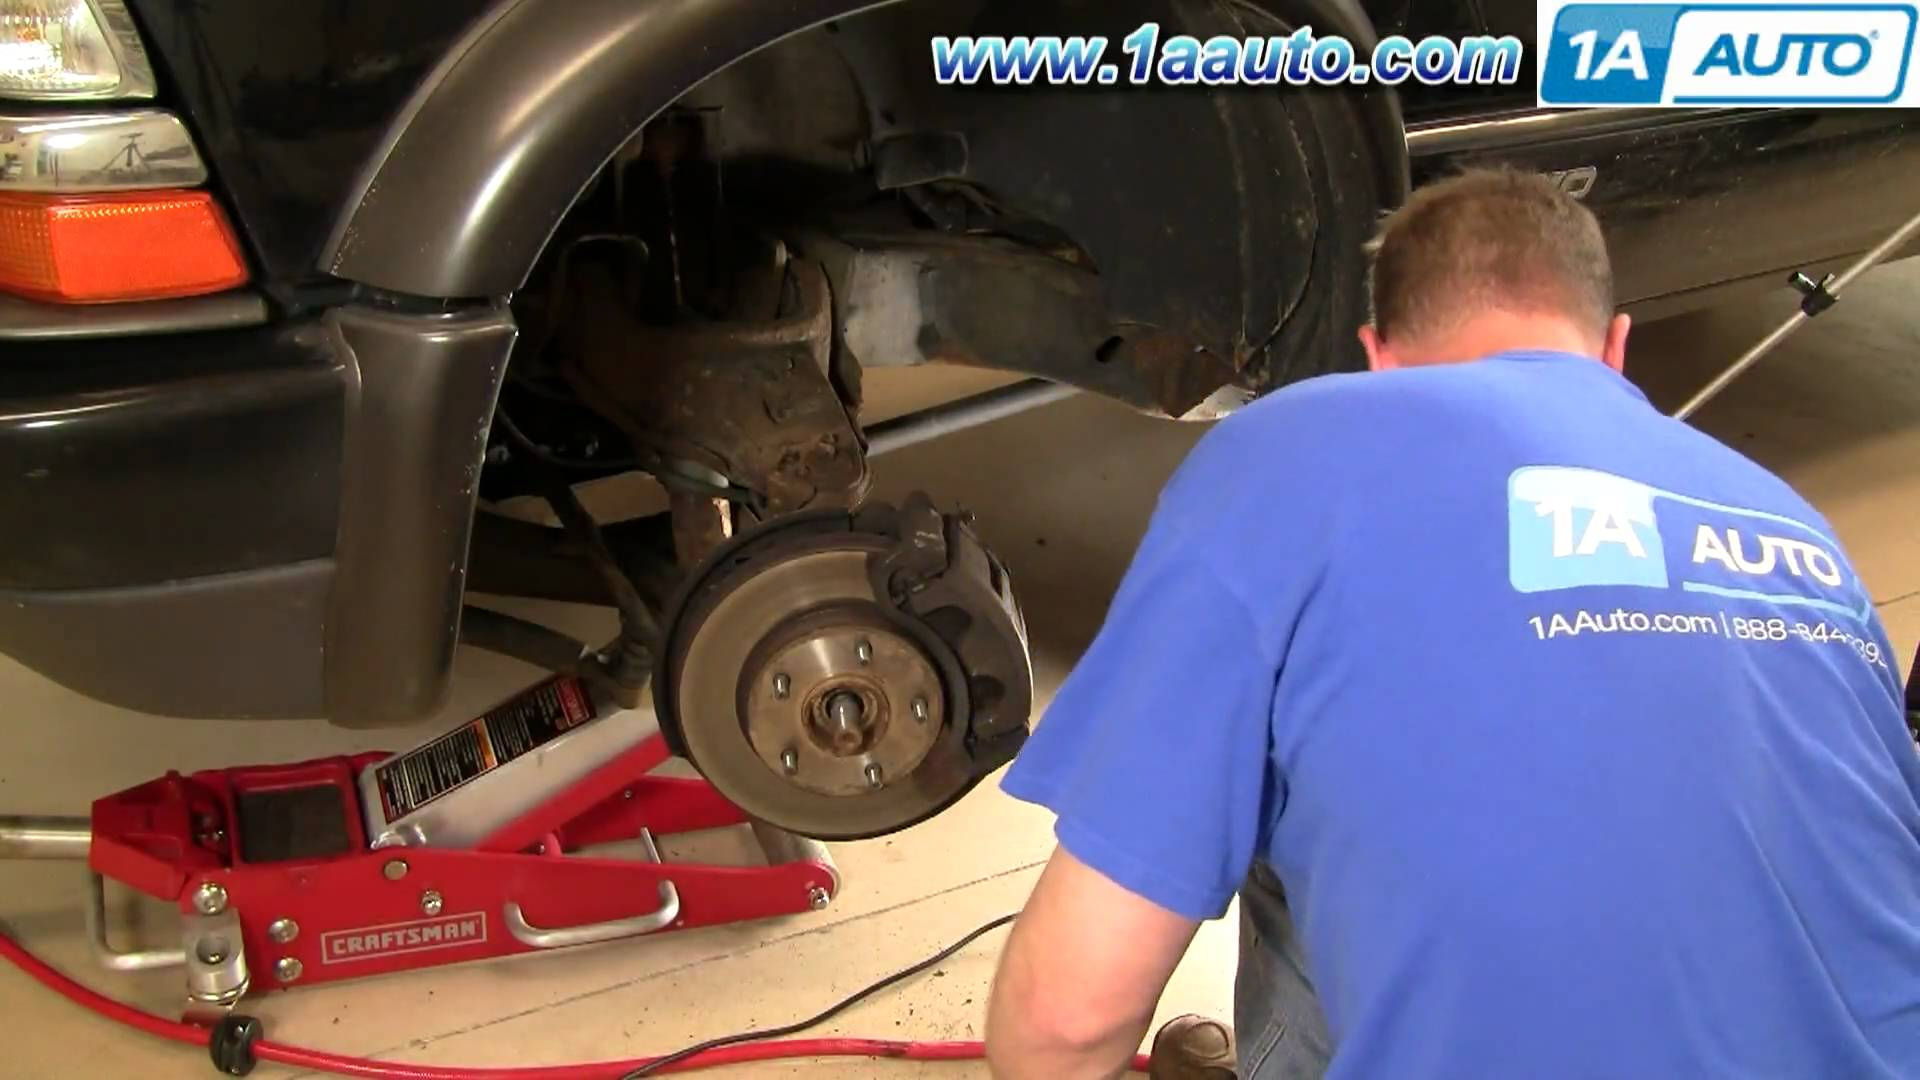 How To Install Replace Wheel Hub Bearing Chevy GMC S-10 S15 4x4 Part 1 1AAuto.com 2